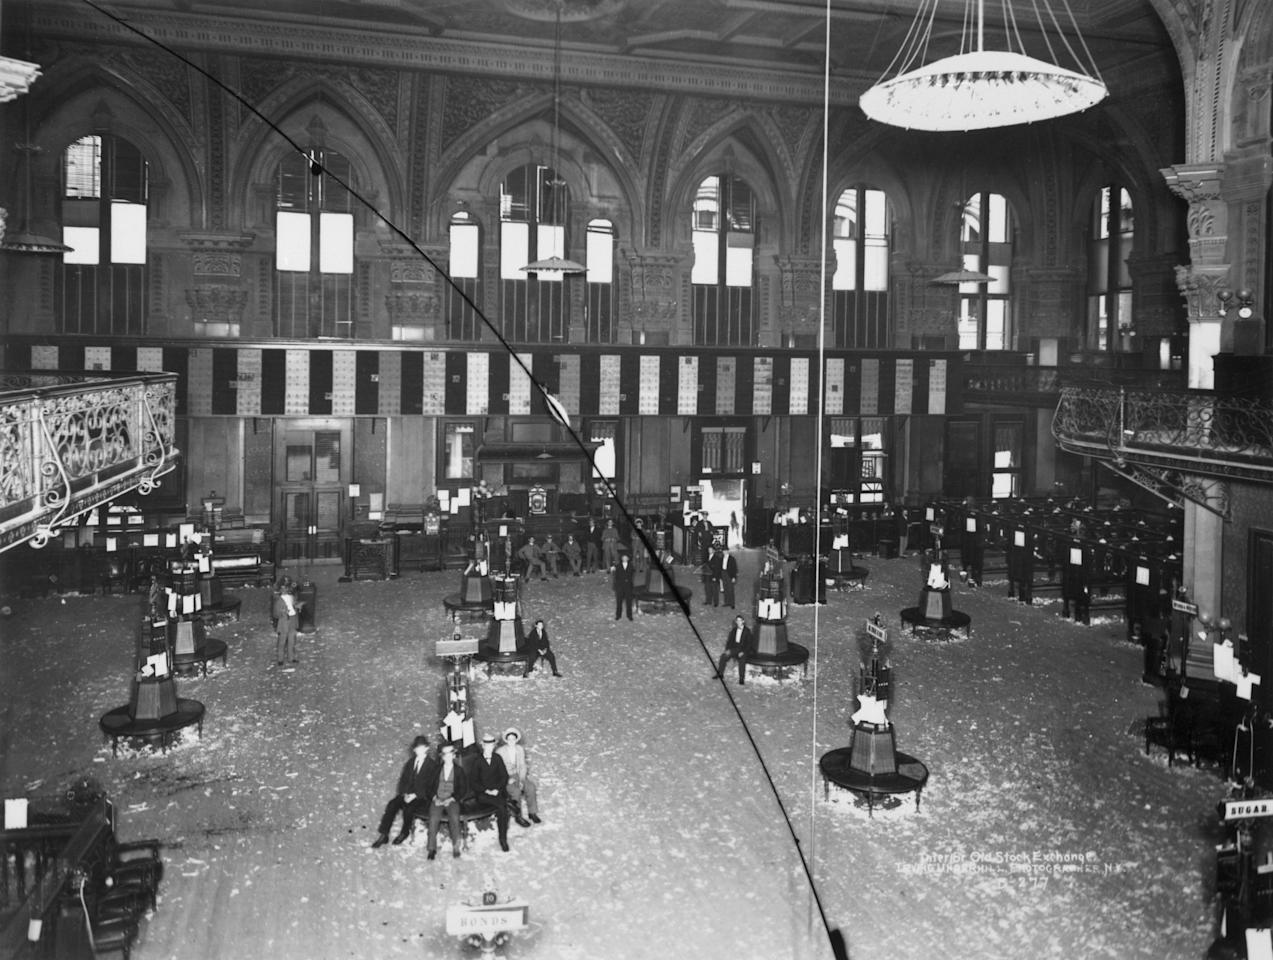 Interior of the New York Stock Exchange, old building: brokers sitting around, New York, 1895.